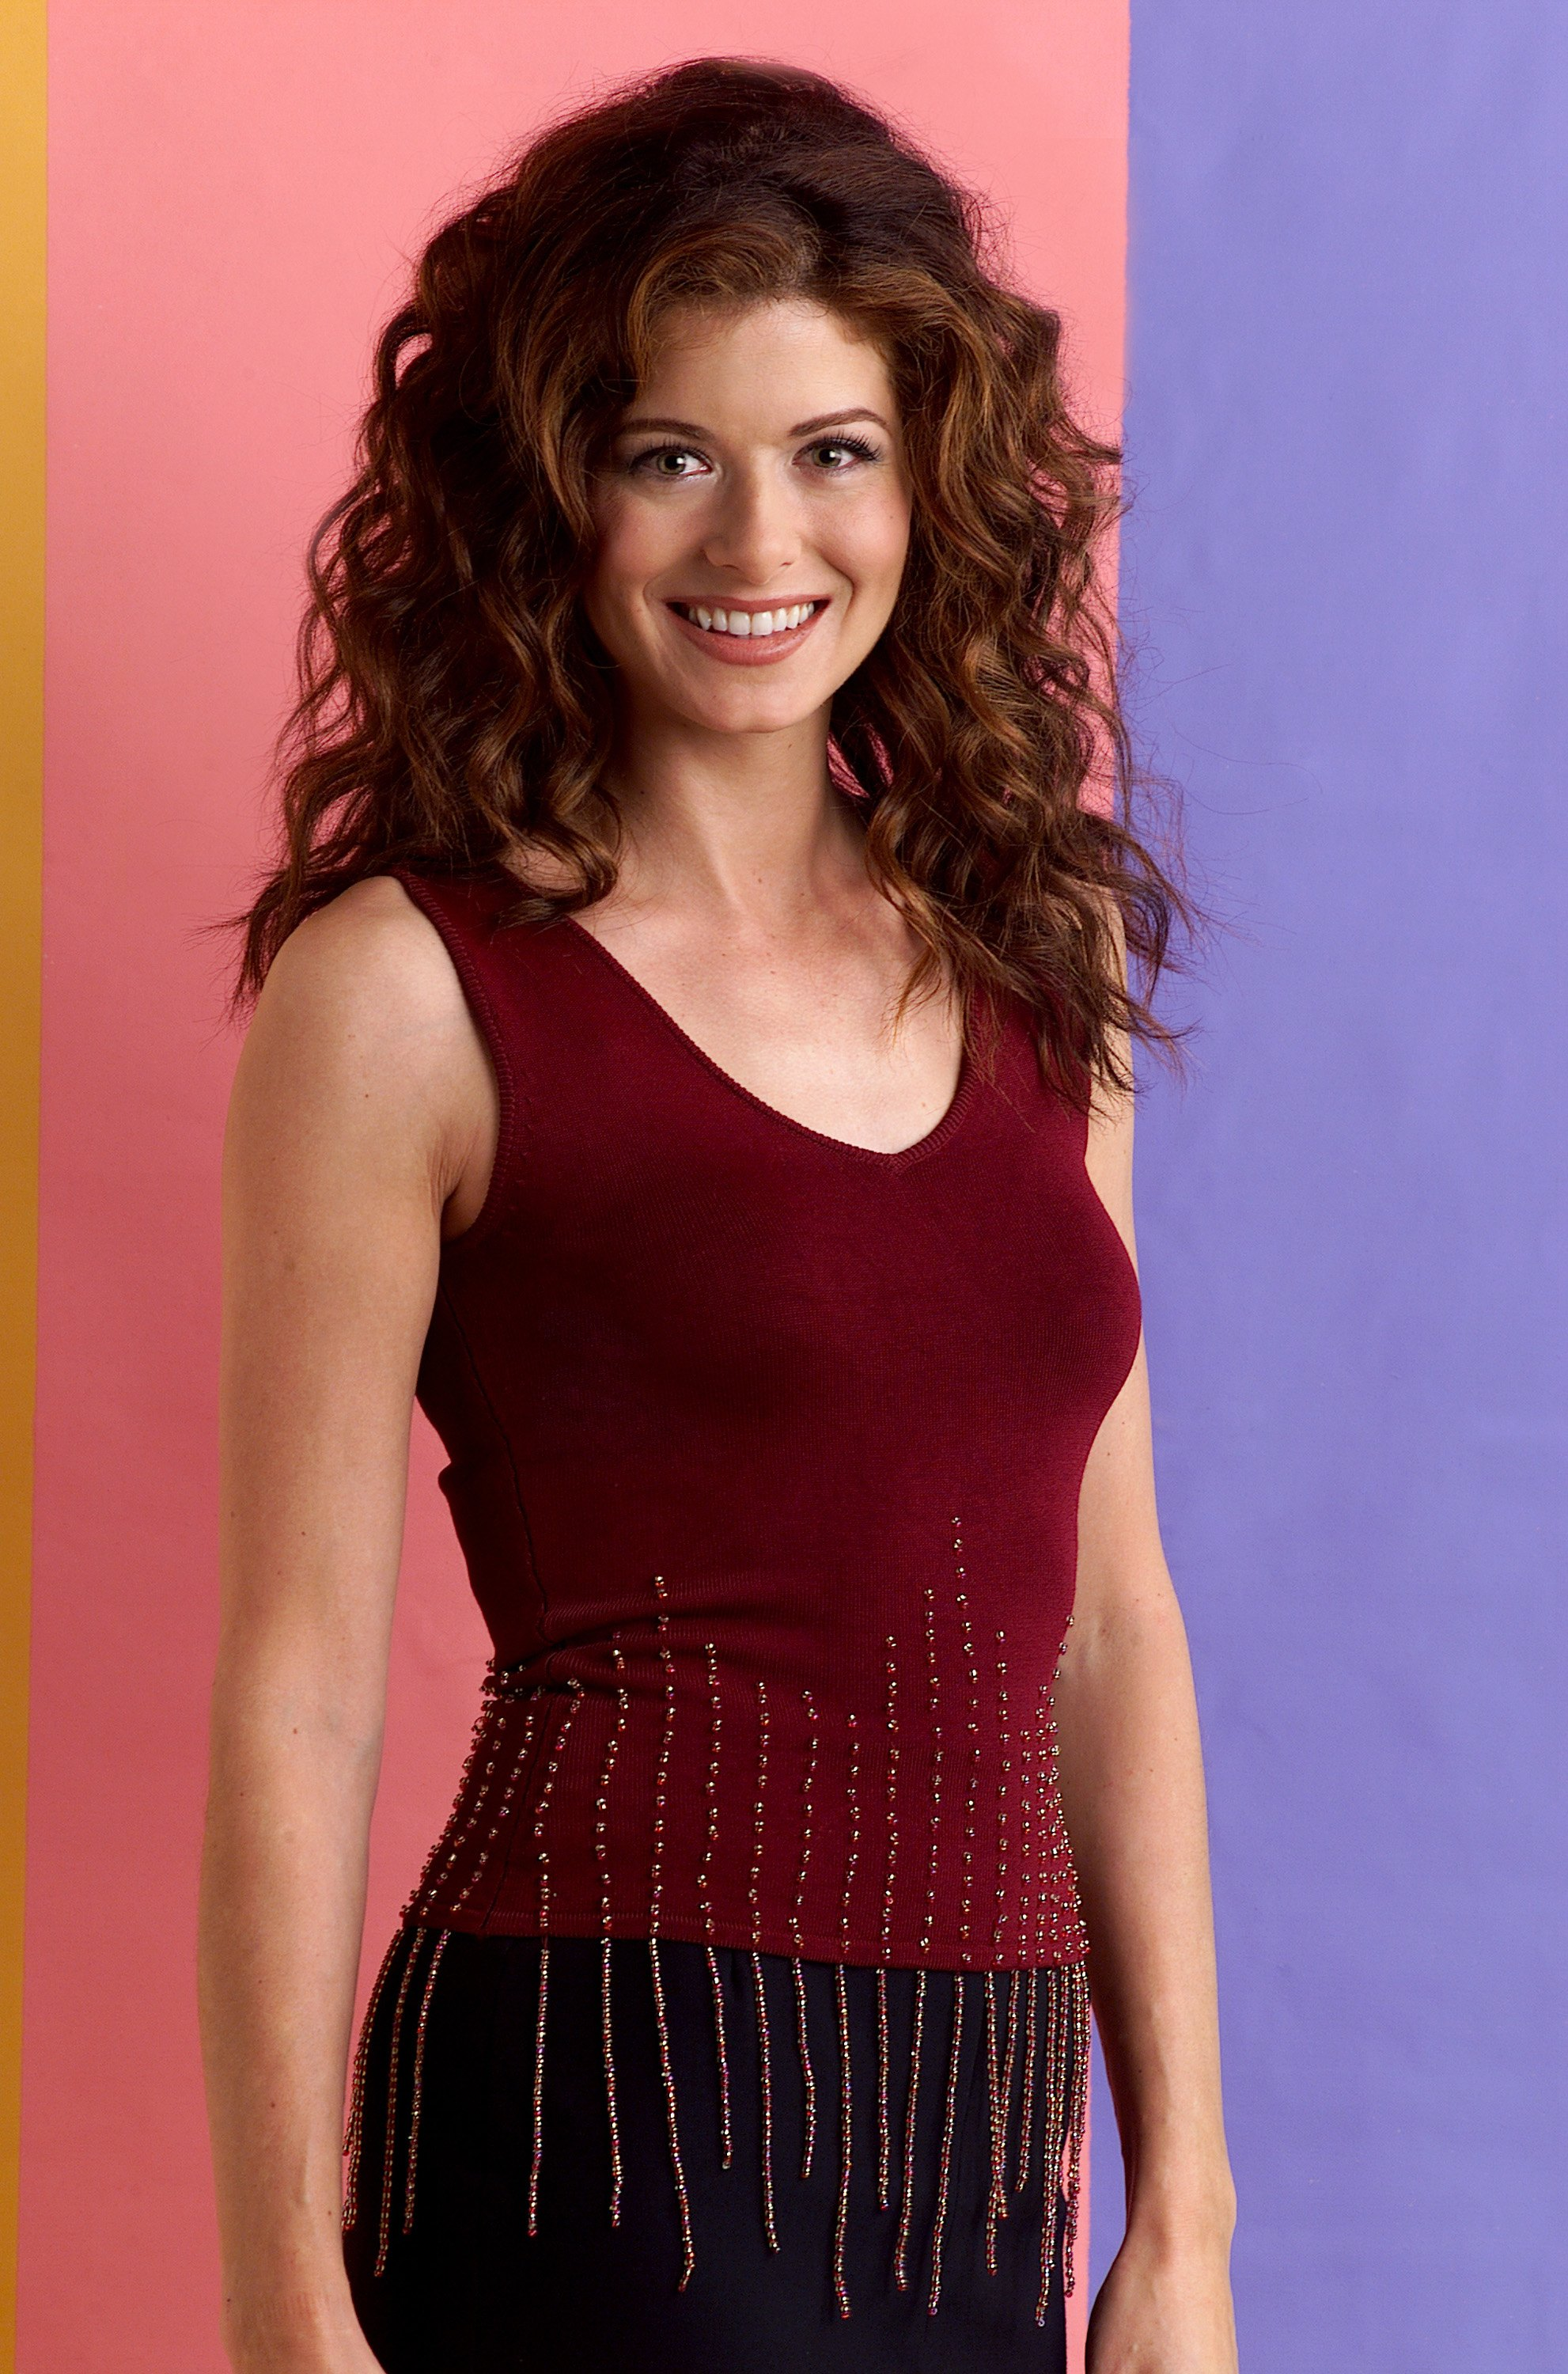 Debra Messing Braless Cool no one on 'will & grace' has changed their clothes in 19 years